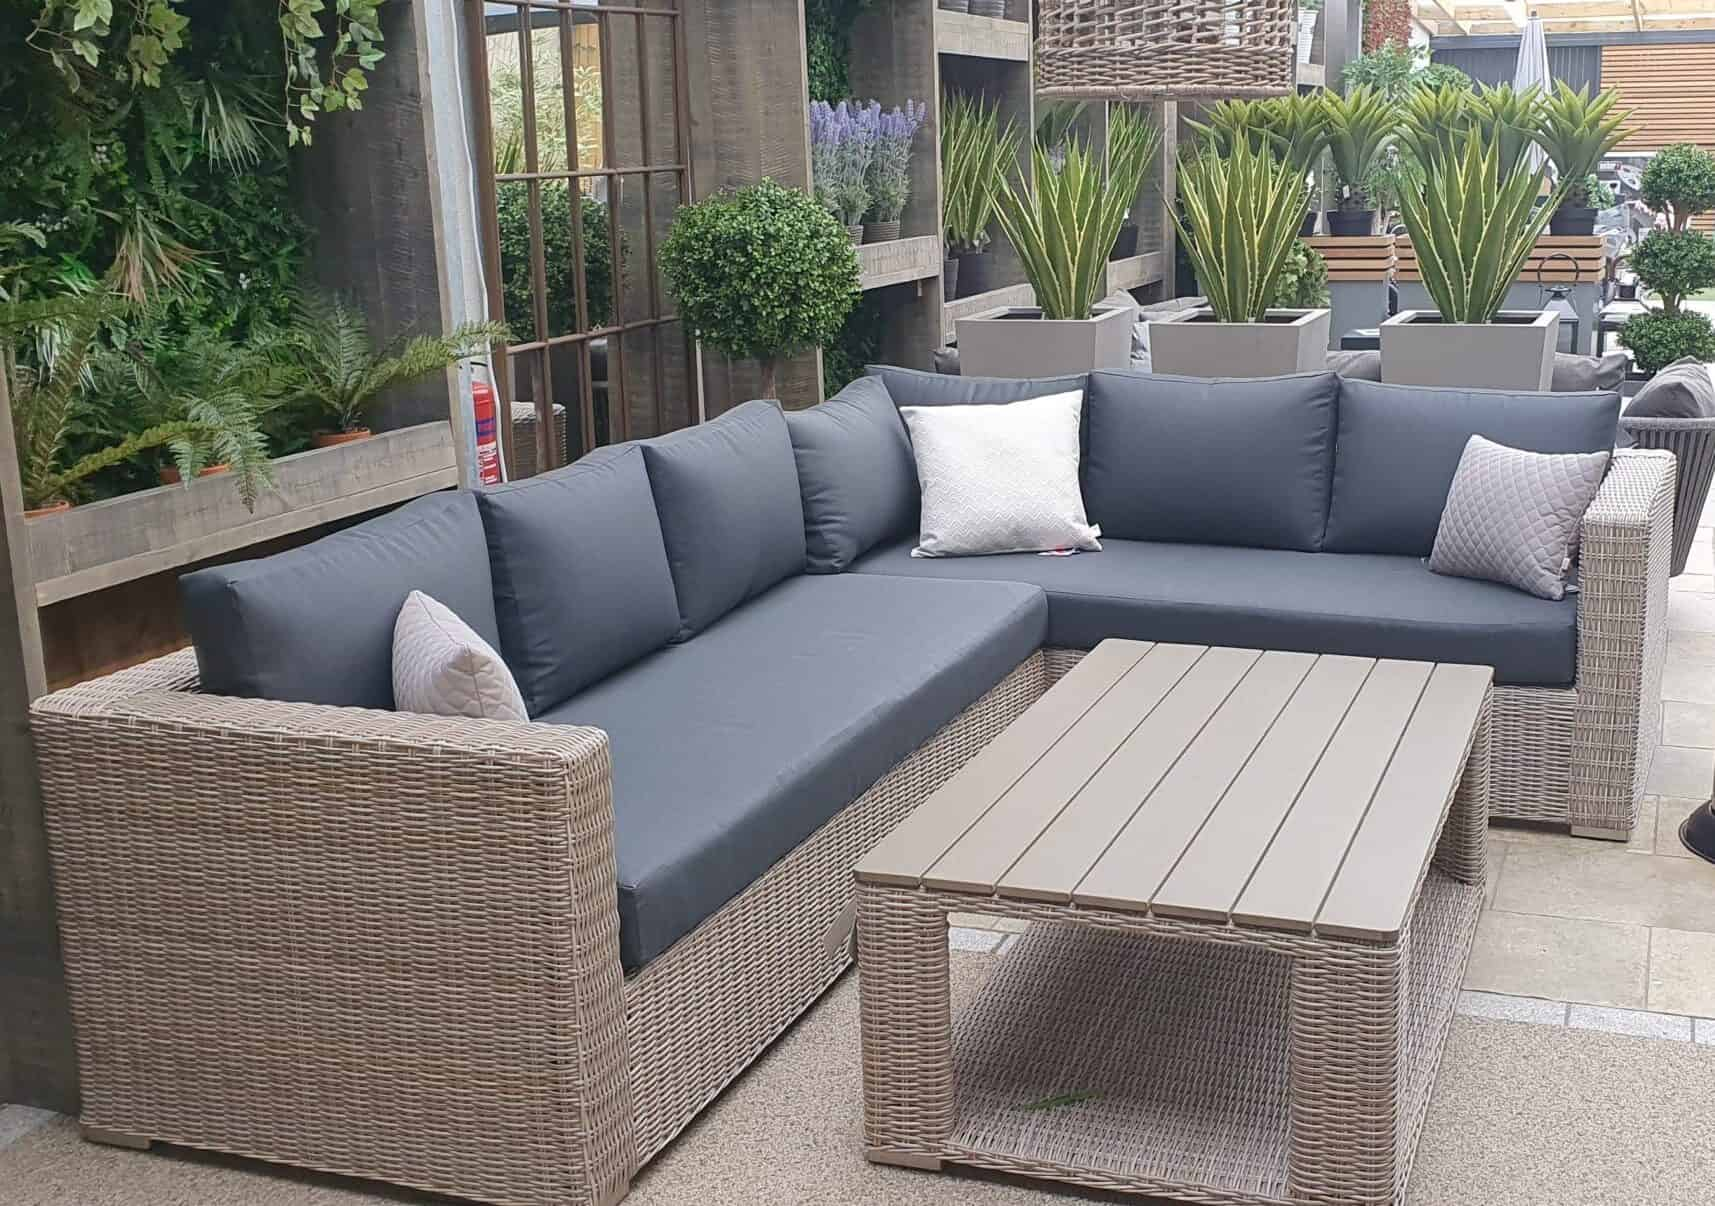 Valencia corner sofa - Outdoor Furniture For Sale Dublin Ireland